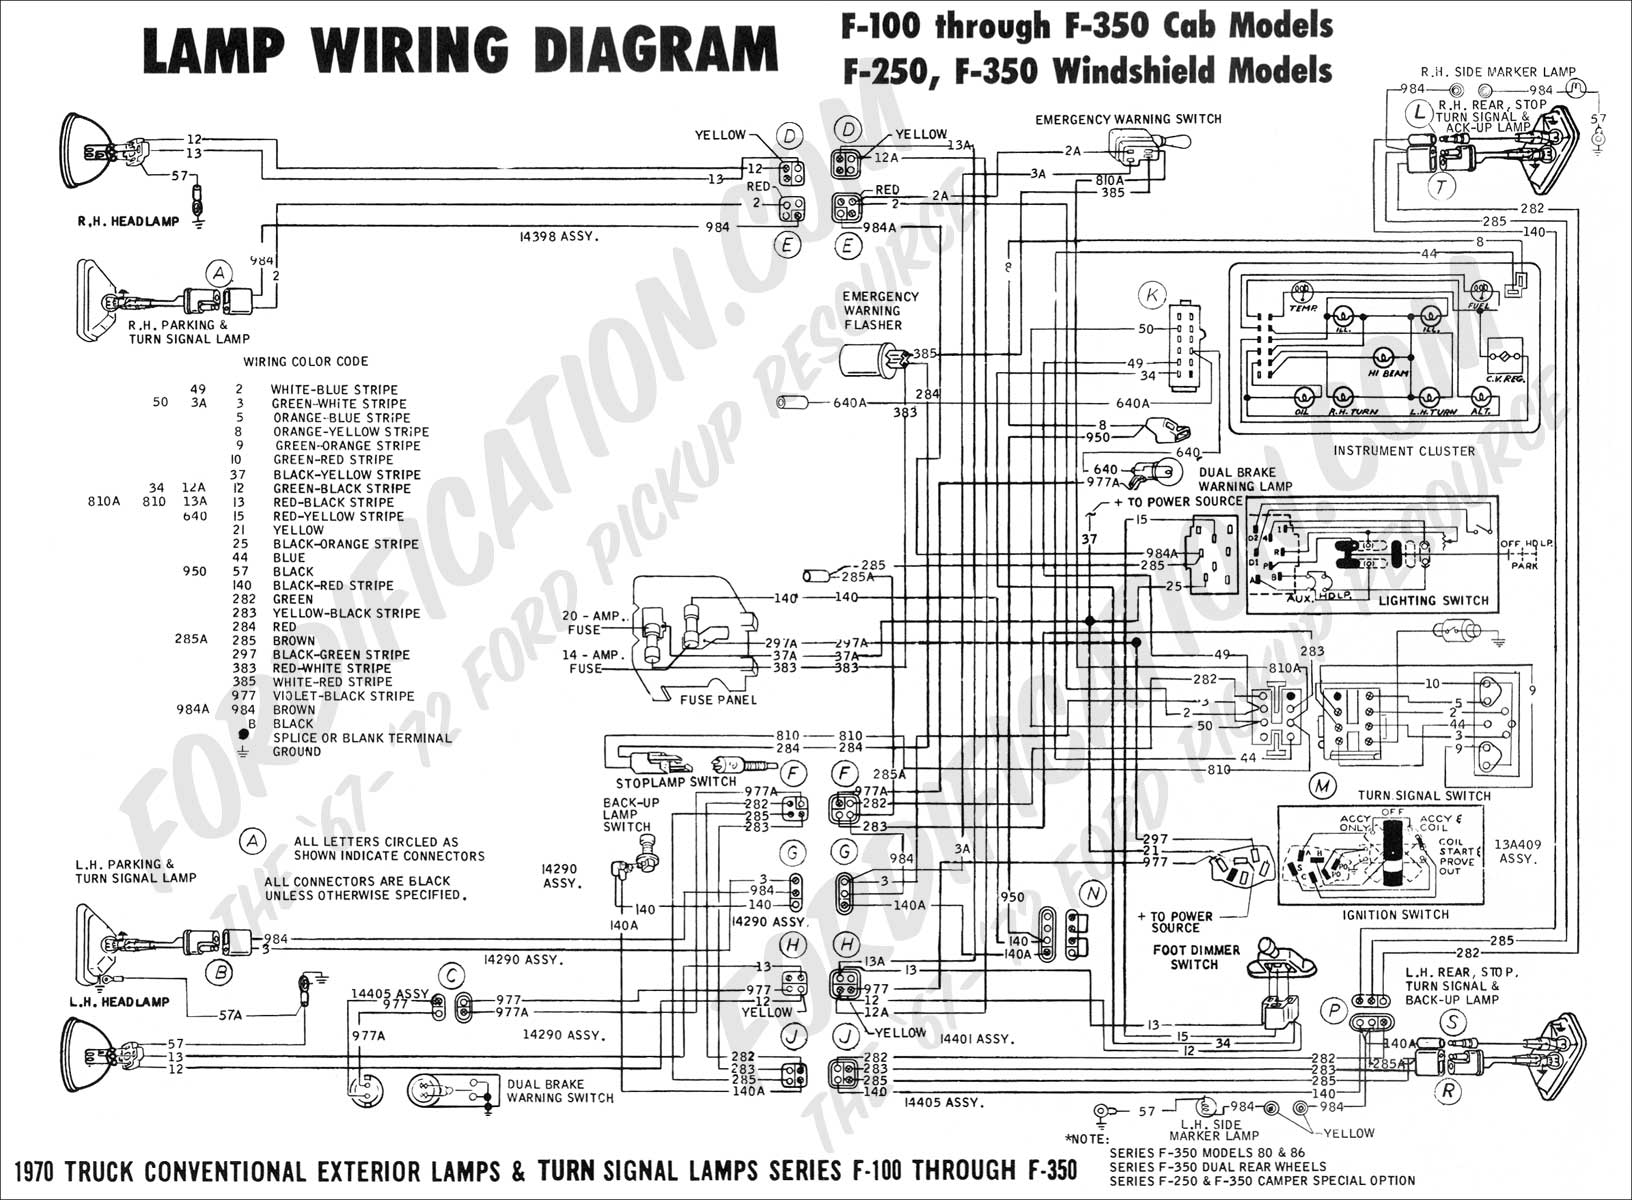 f350 wiring diagram f350 wiring diagrams 1970 f 100 f250 lamp wiring 01 the wiring diagram for ford f350 flasher